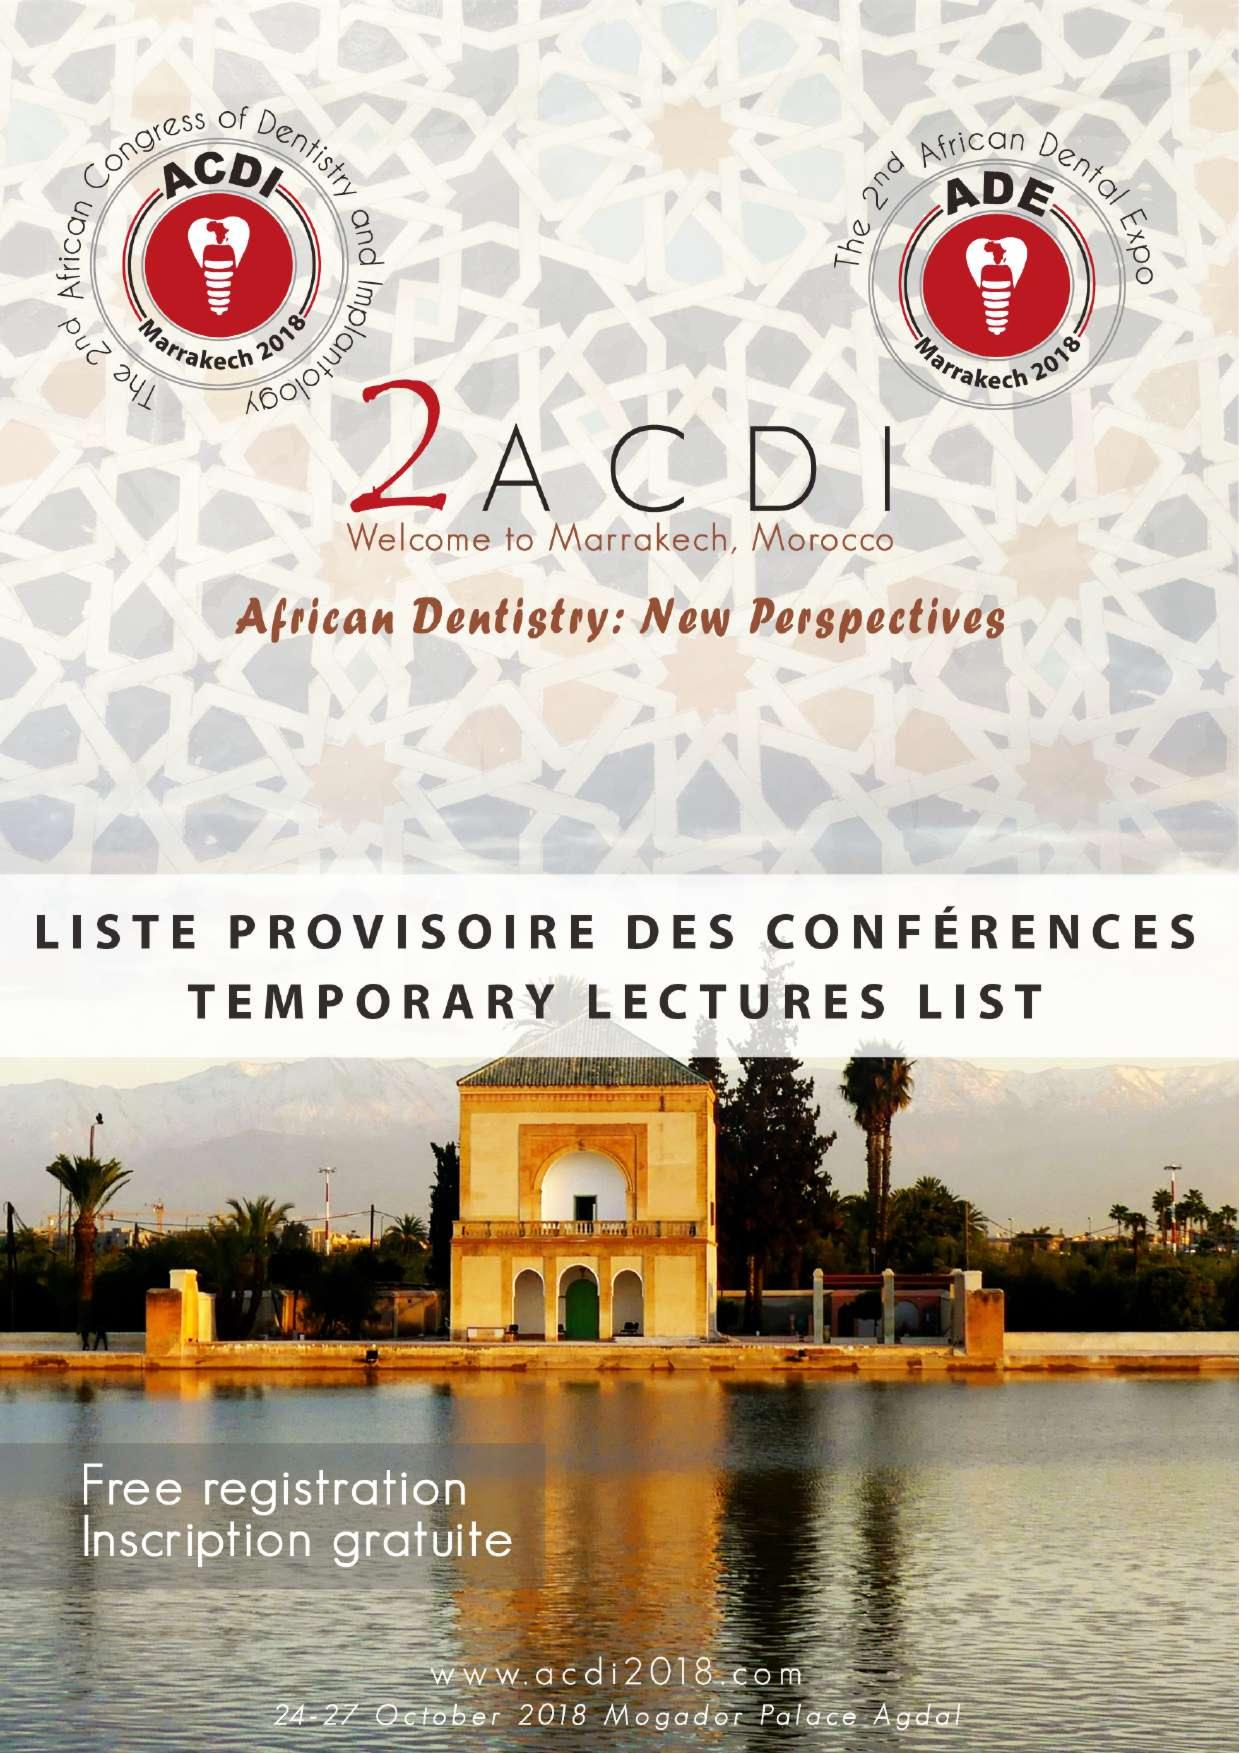 Temporary lectures list